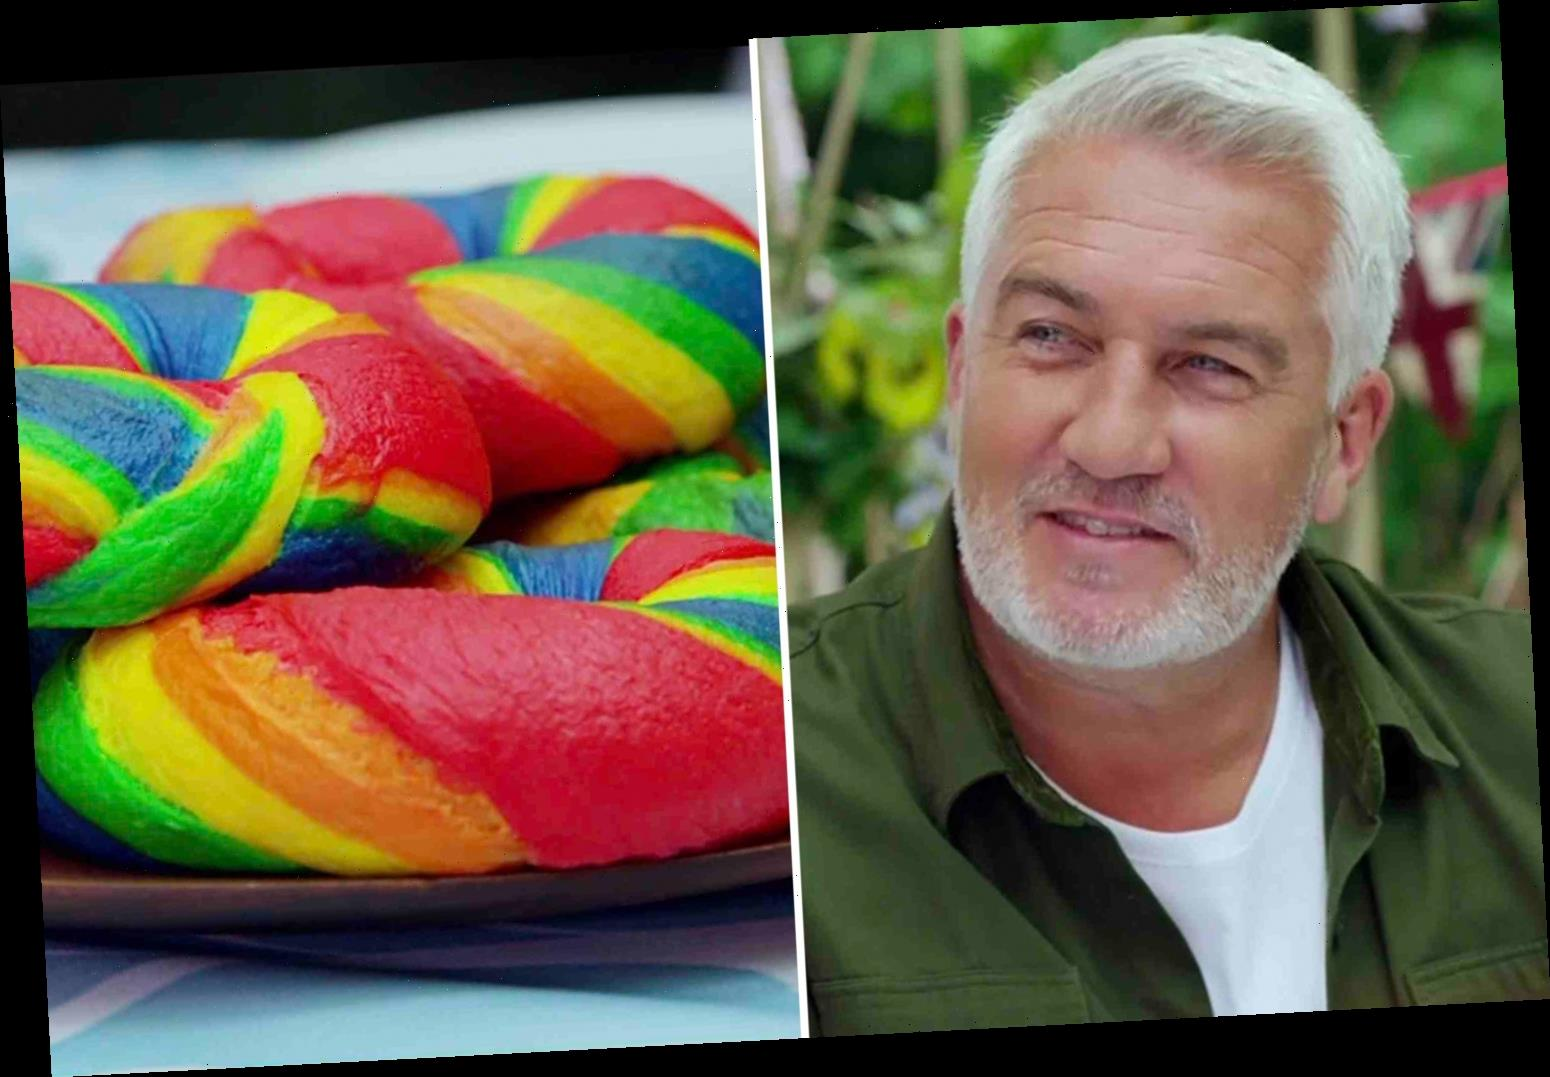 GBBO hit by Ofcom complaints after Paul Hollywood says rainbow bagels represent the NHS instead of LGBTQ+ community